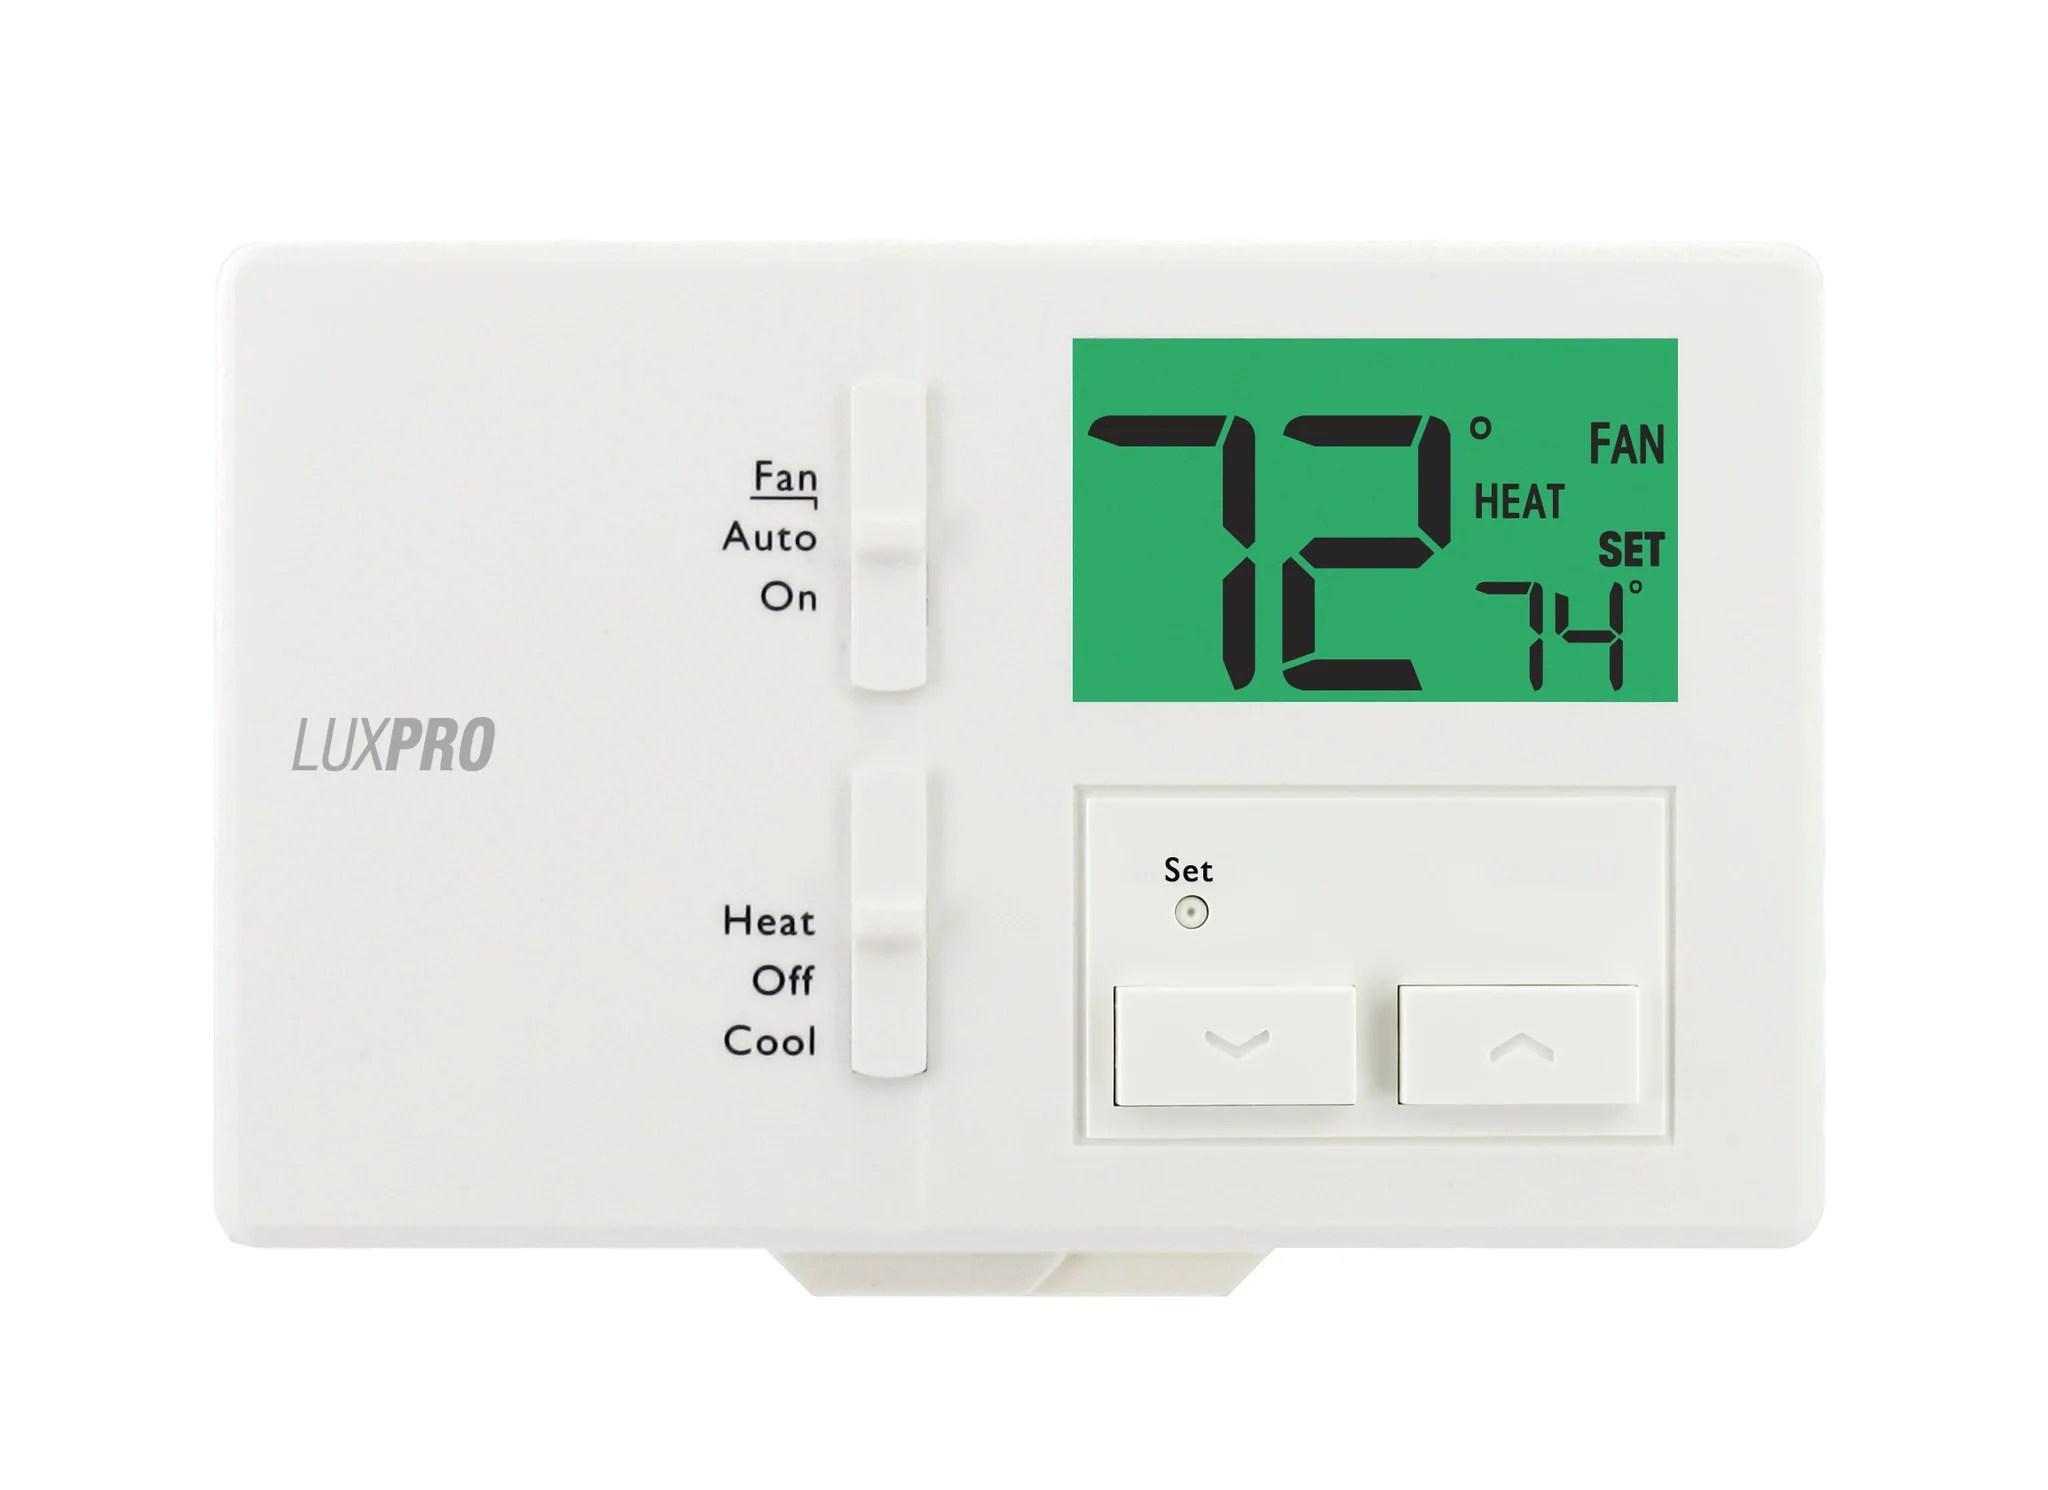 small resolution of luxpro thermostat 2wire wiring diagram example electrical wiring 3m thermostat diagram luxpro p111 non programmable thermostat